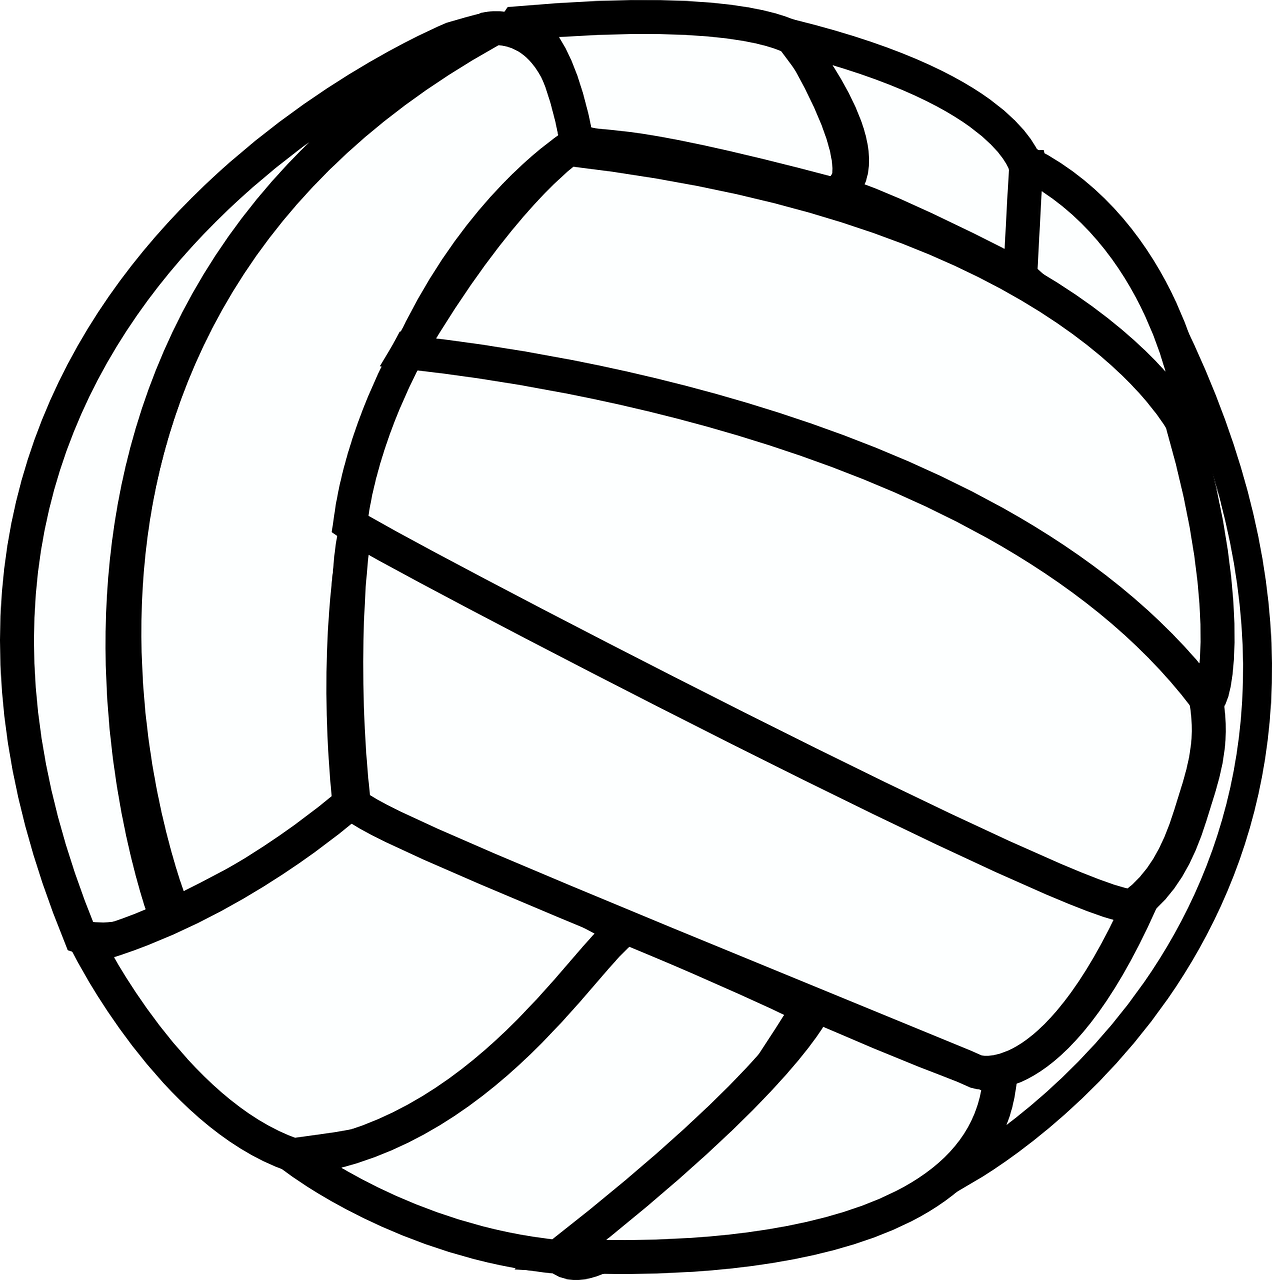 Free Image On Pixabay Volleyball Sport Black White Volleyball Clipart Volleyball Locker Volleyball Players